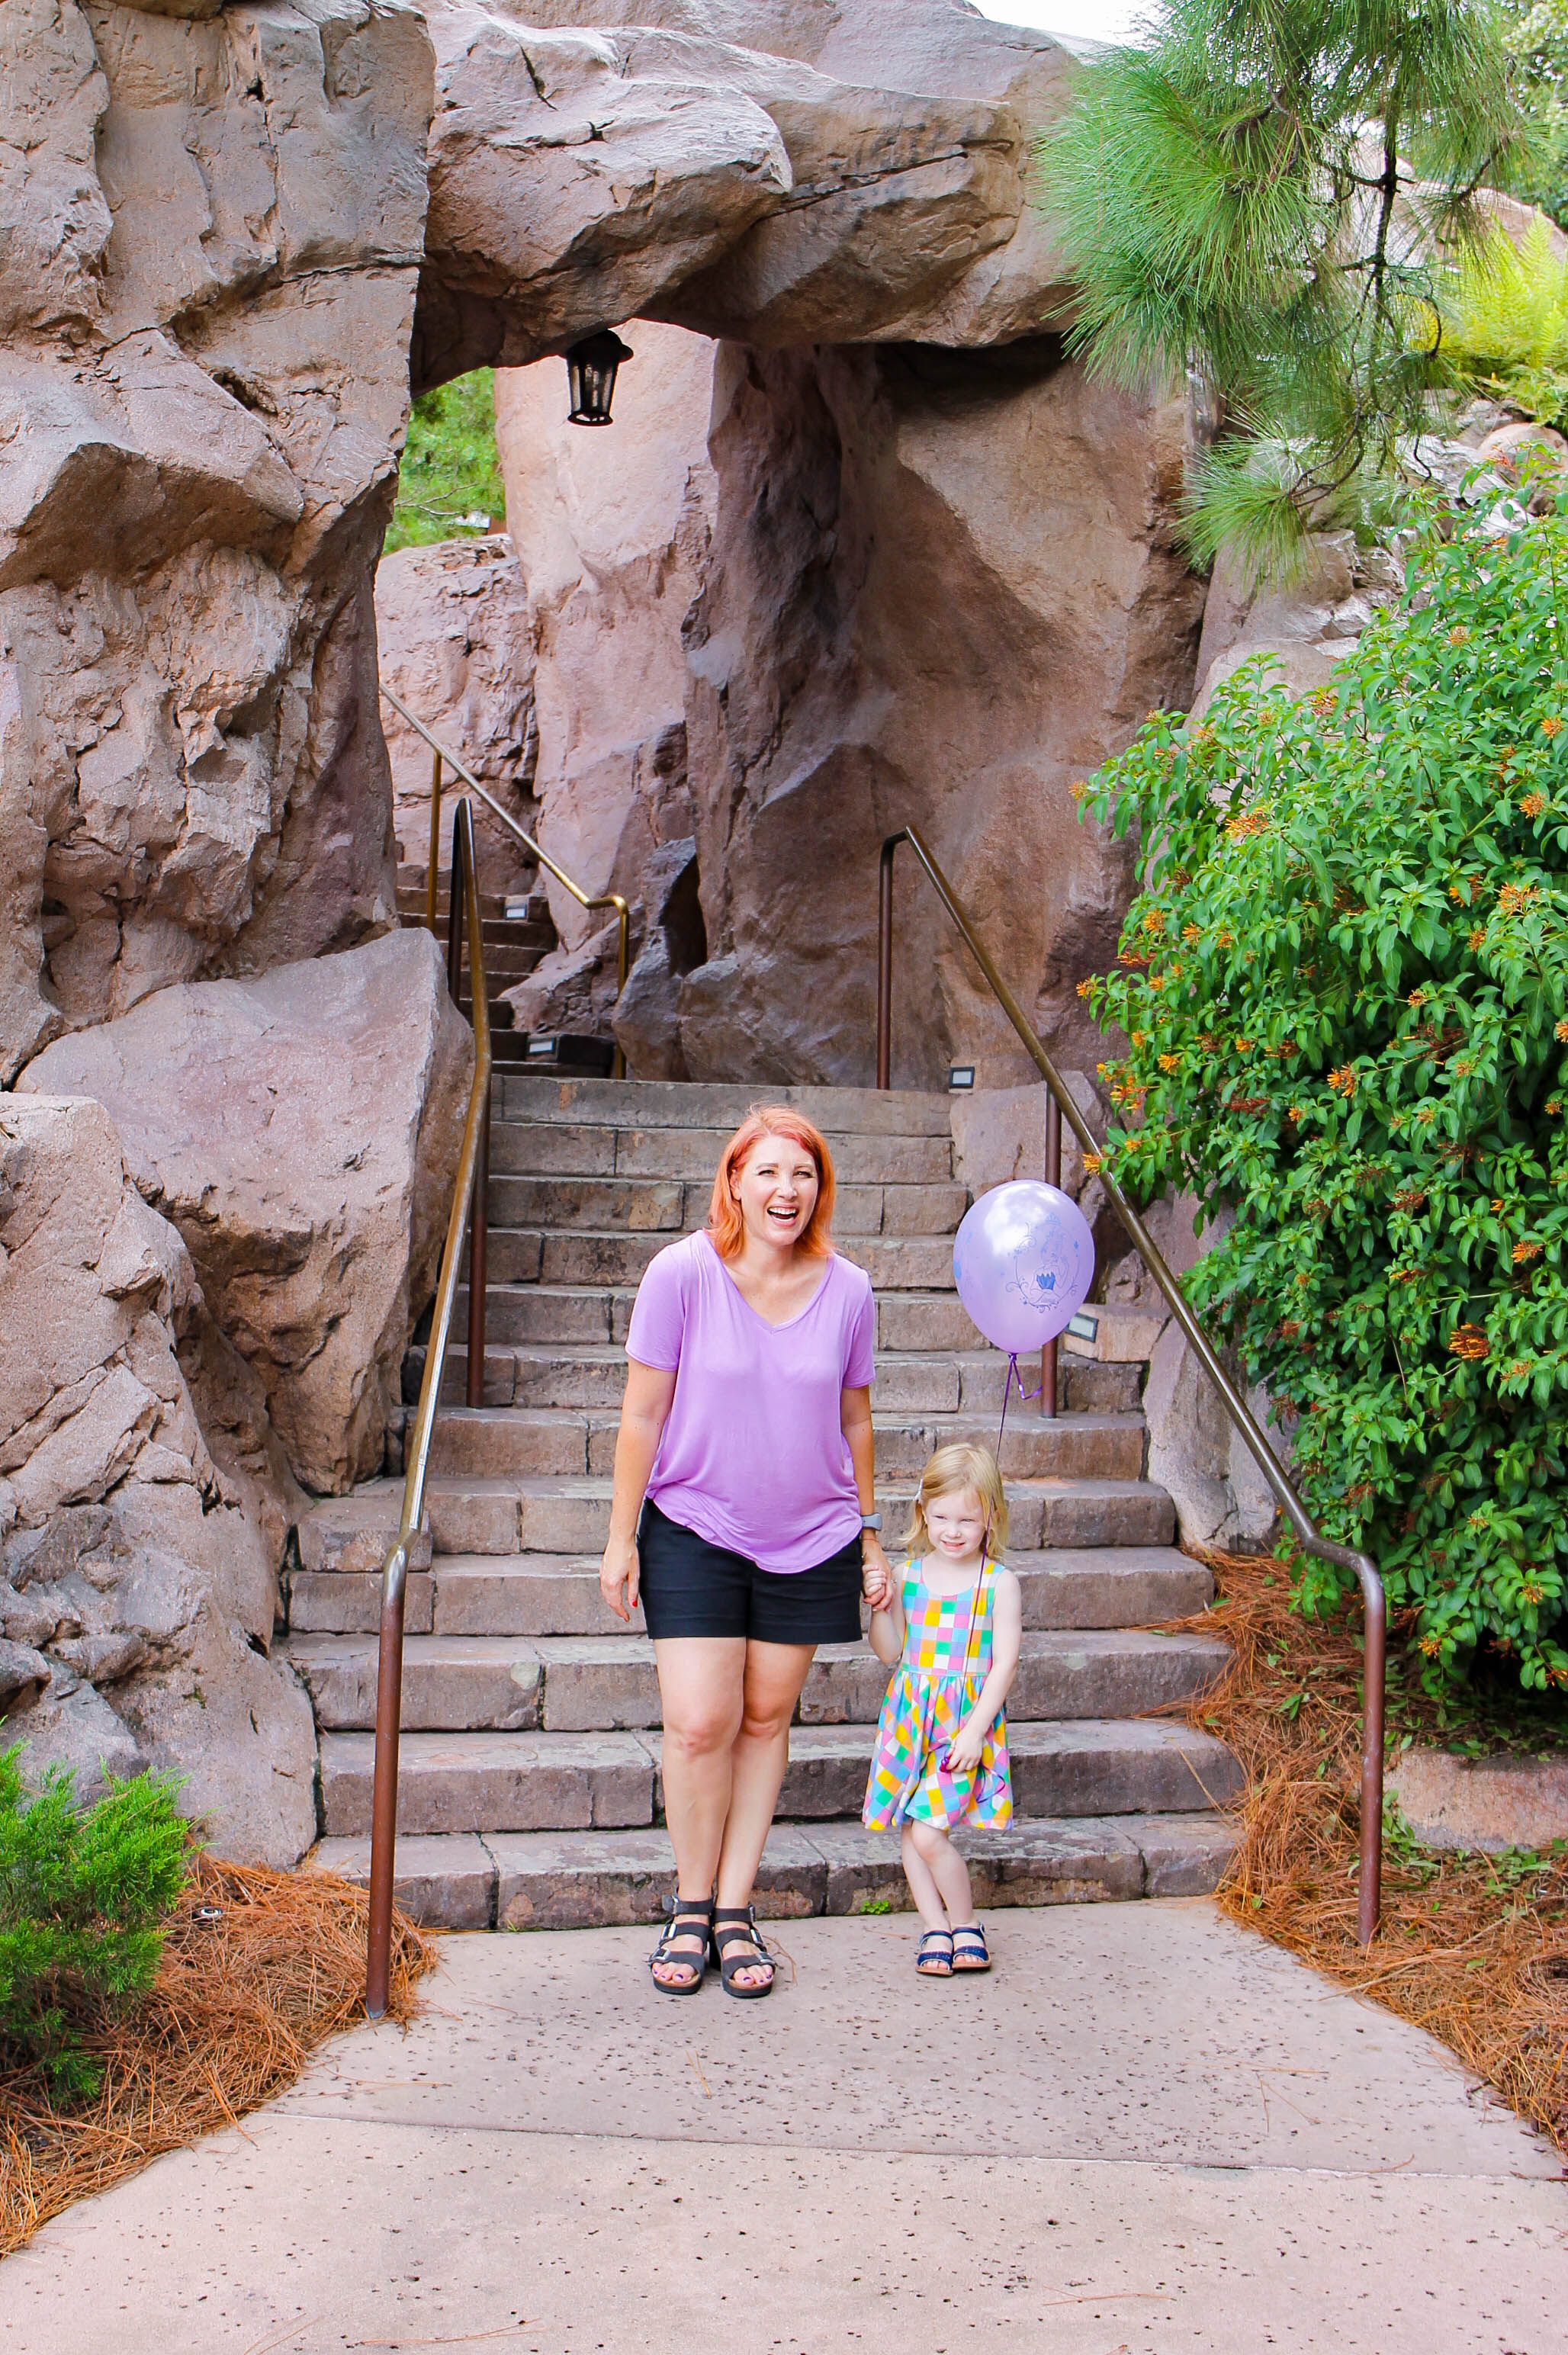 Looking for Walt Disney World Hotels? This review of the Copper Creek Villas is a MUST READ!